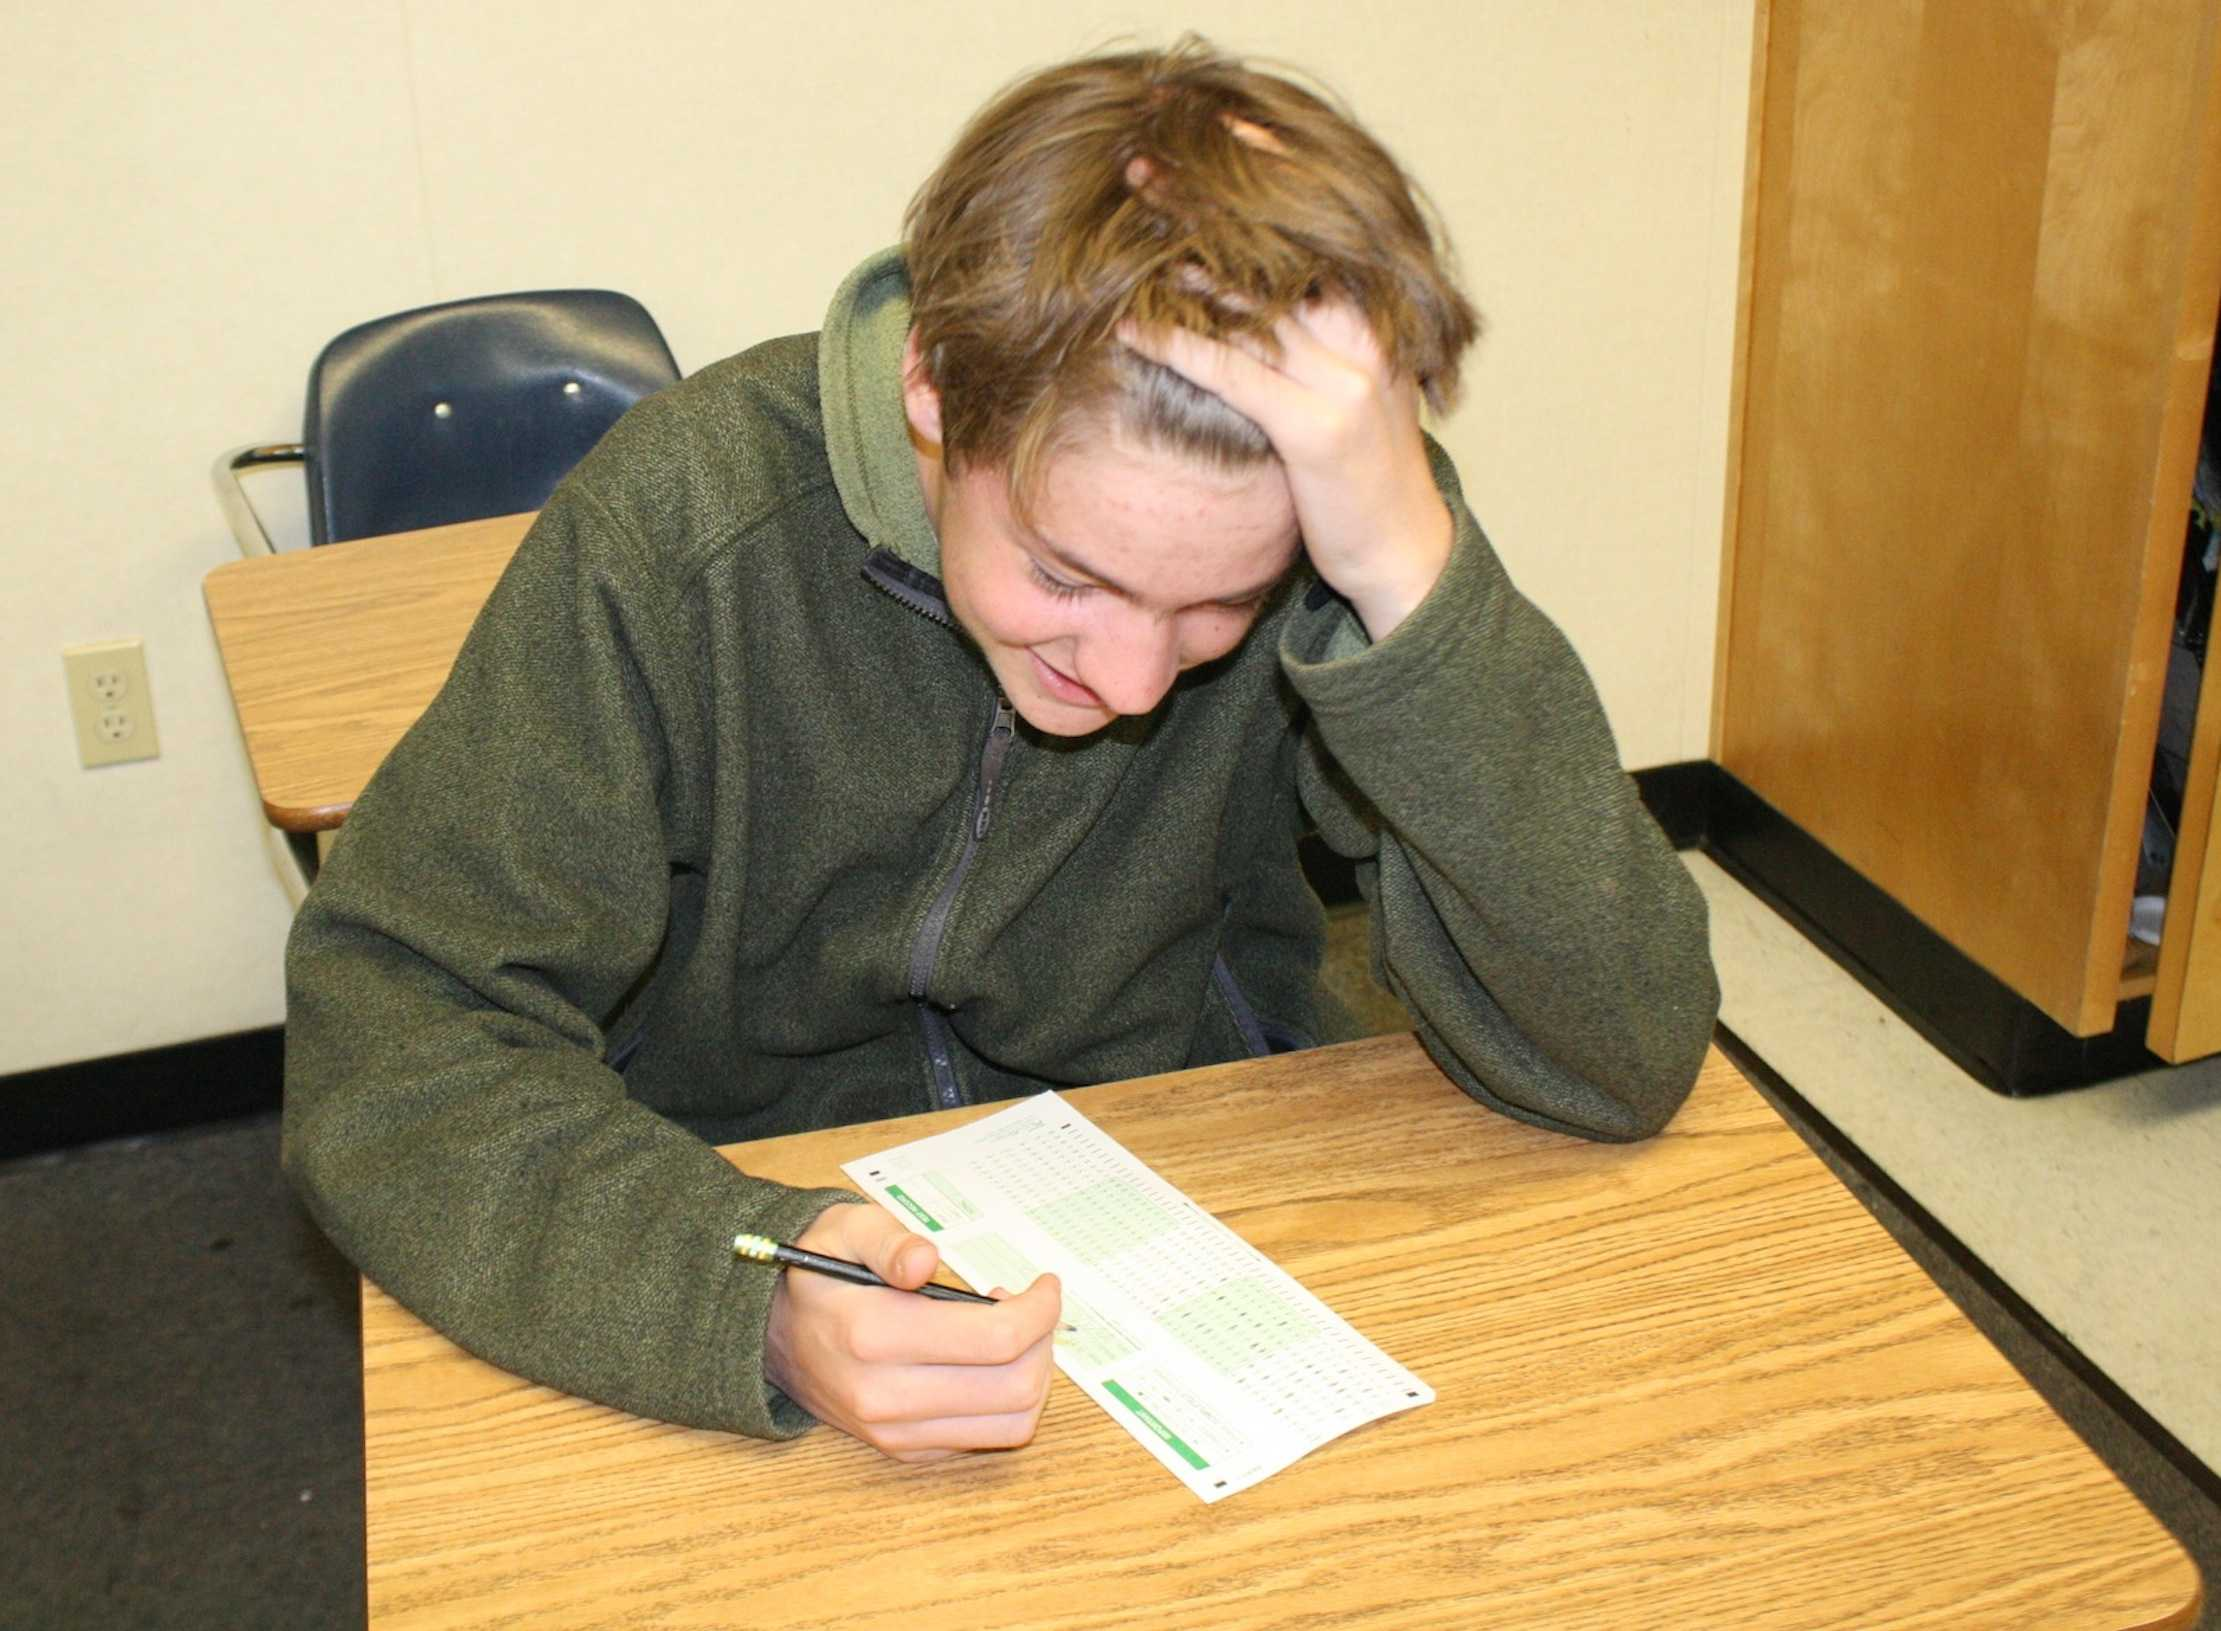 Like this student, kids often agonize over all the standardized tests they are required to take.